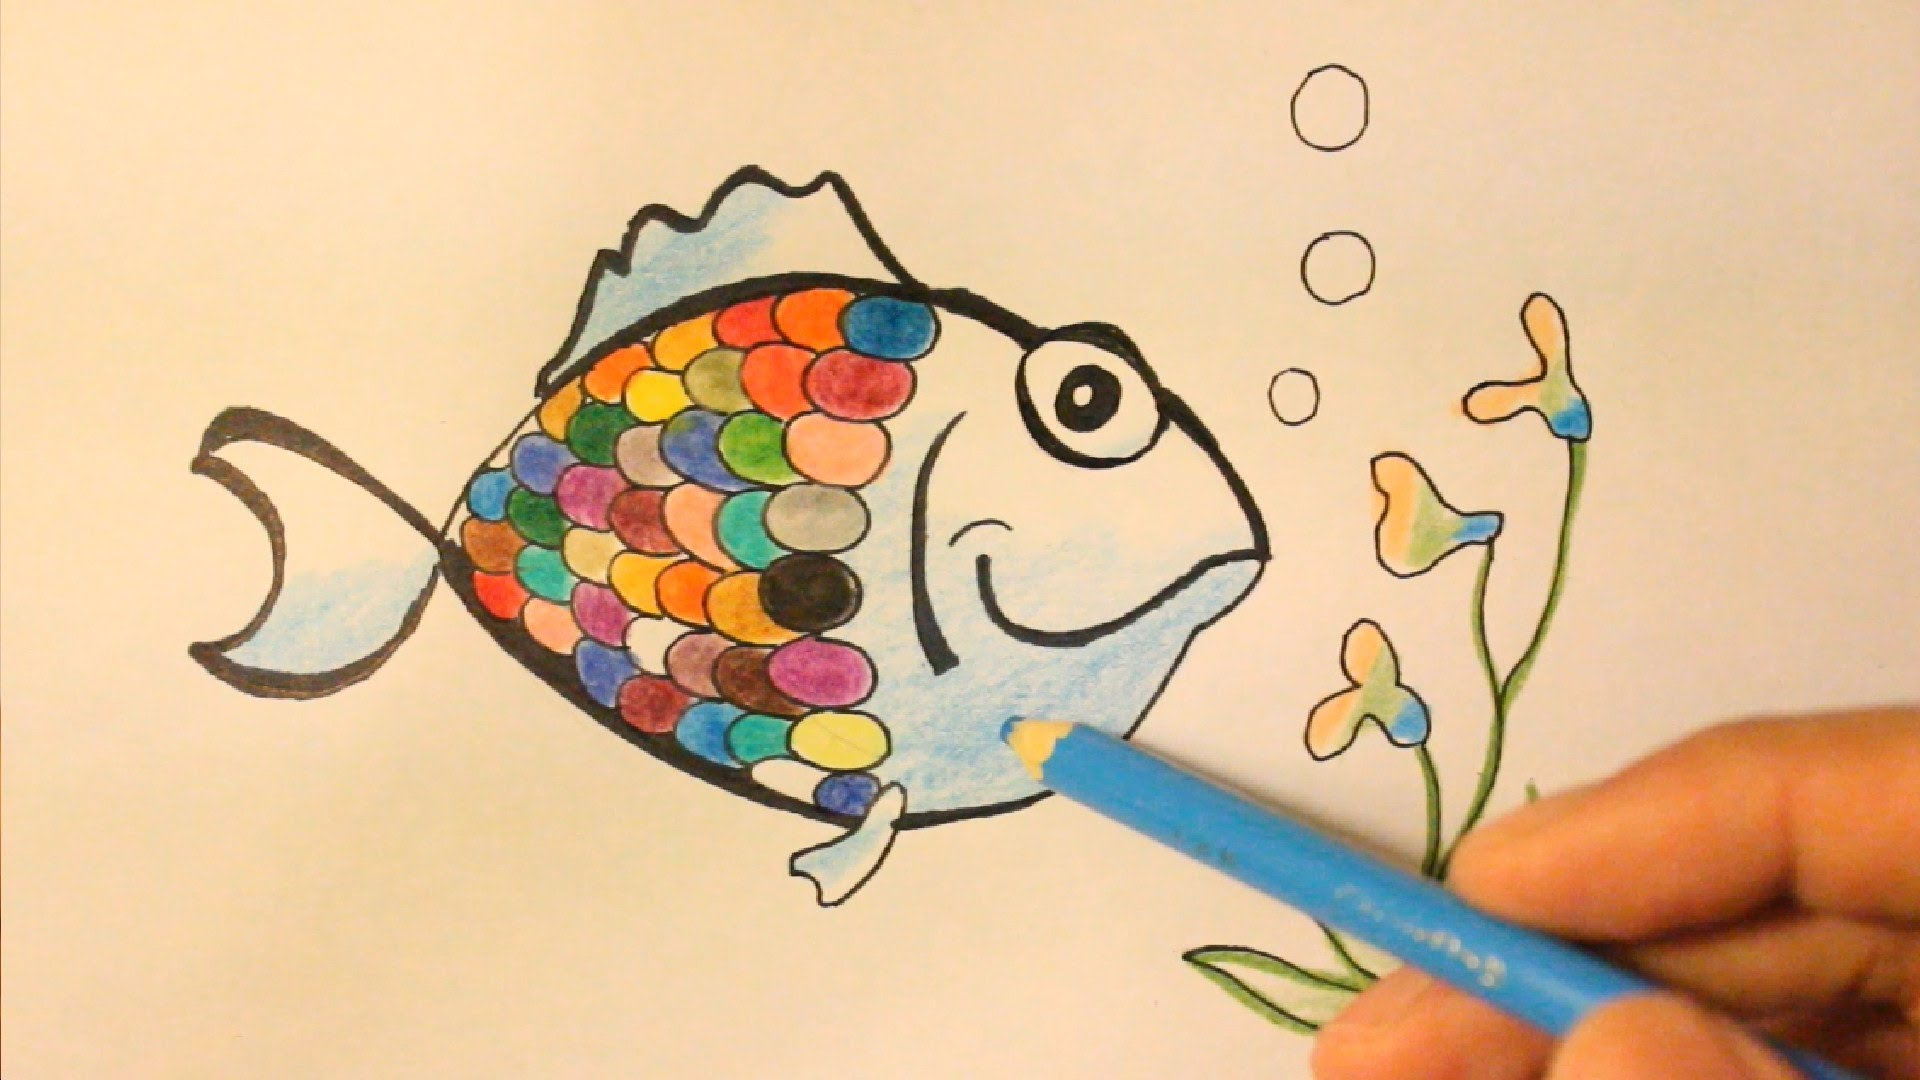 Drawn rainbow draw Rainbow Draw To Rainbow Fish